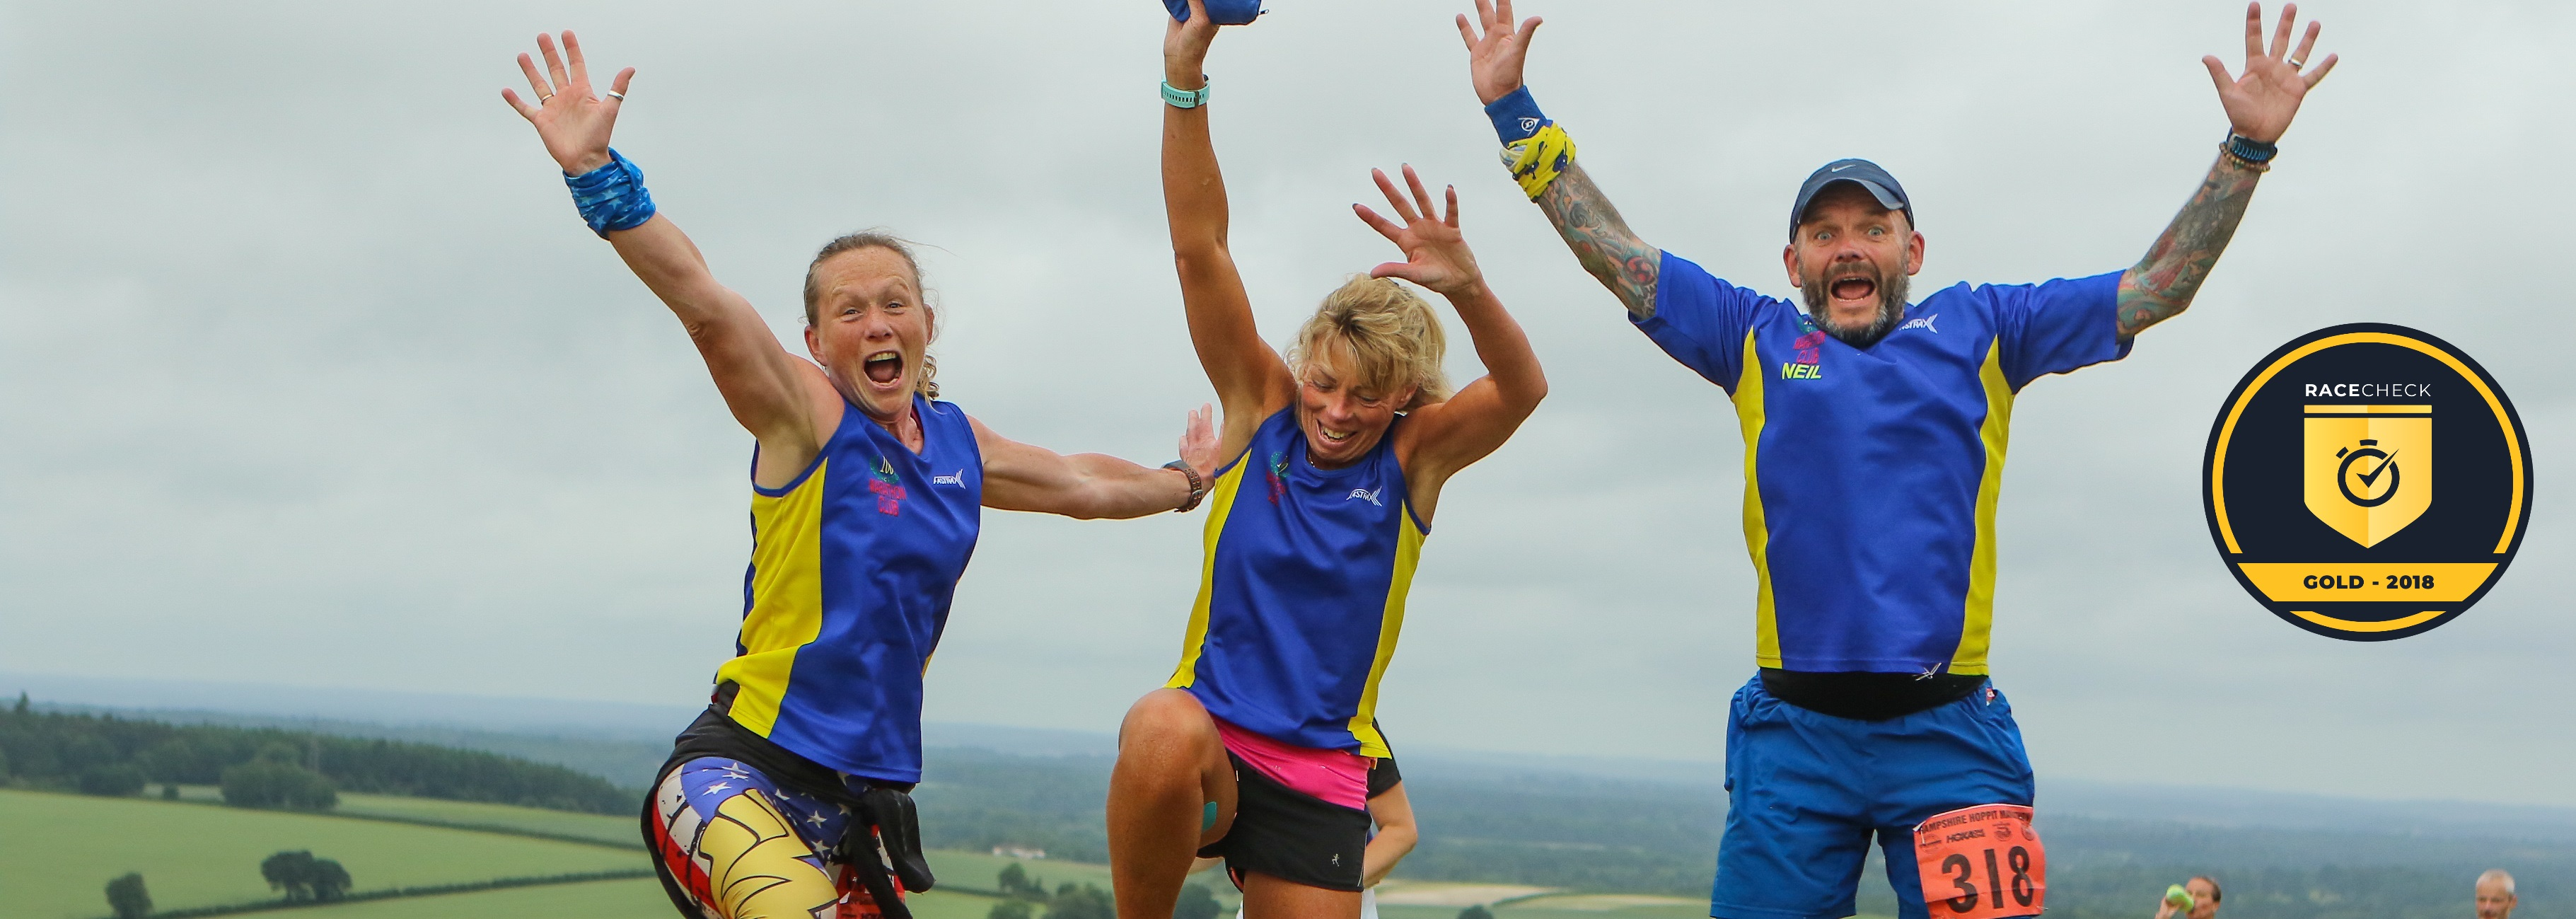 Hampshire Hoppit 2020 Entries Now Open!